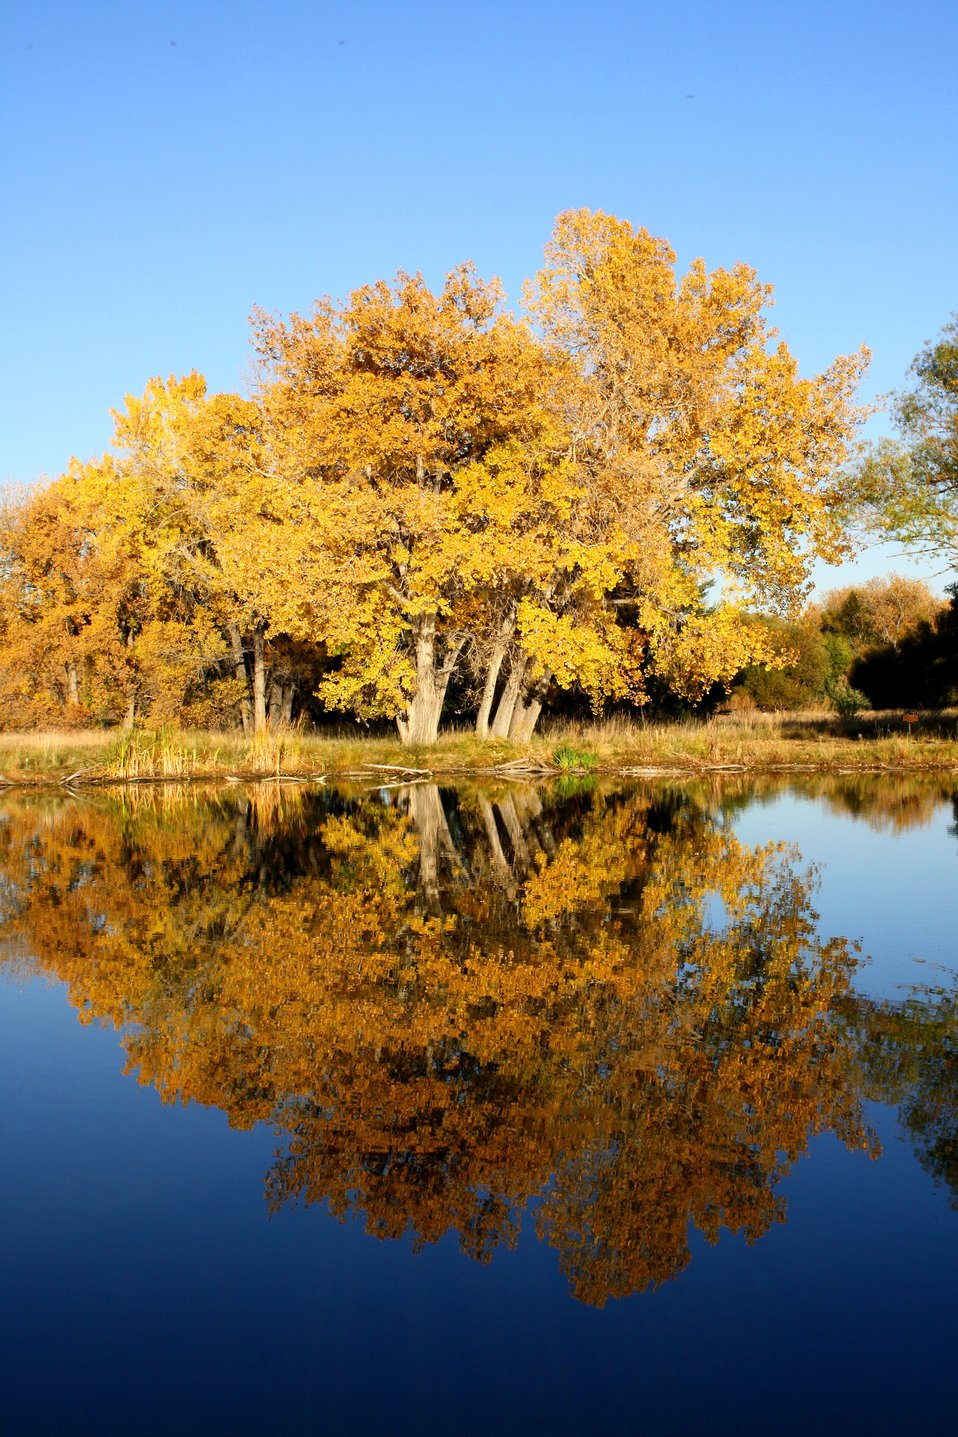 Free high resolution photo of fall trees by a lake. The tree leaves are turning a beautiful gold or auburn color and there is cloudless blue sky above. The trees and sky are reflected in the water of the lake.